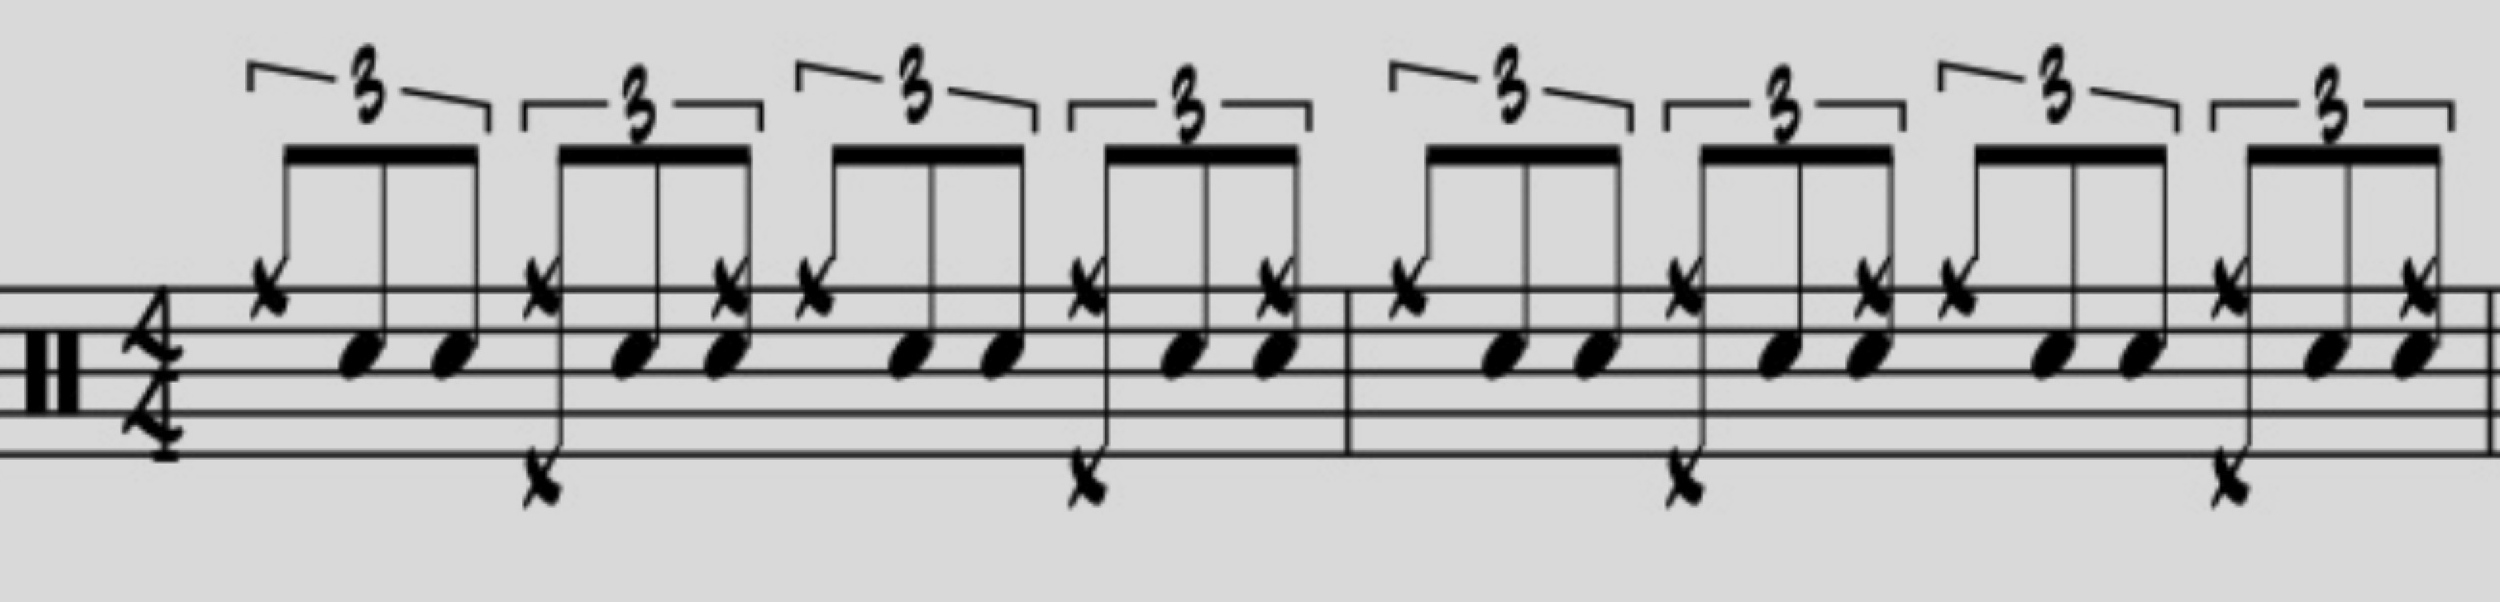 Beginning with a simple jazz pattern on the ride cymbal and hi hat, add the second two notes of the eighth note triplet to each beat.